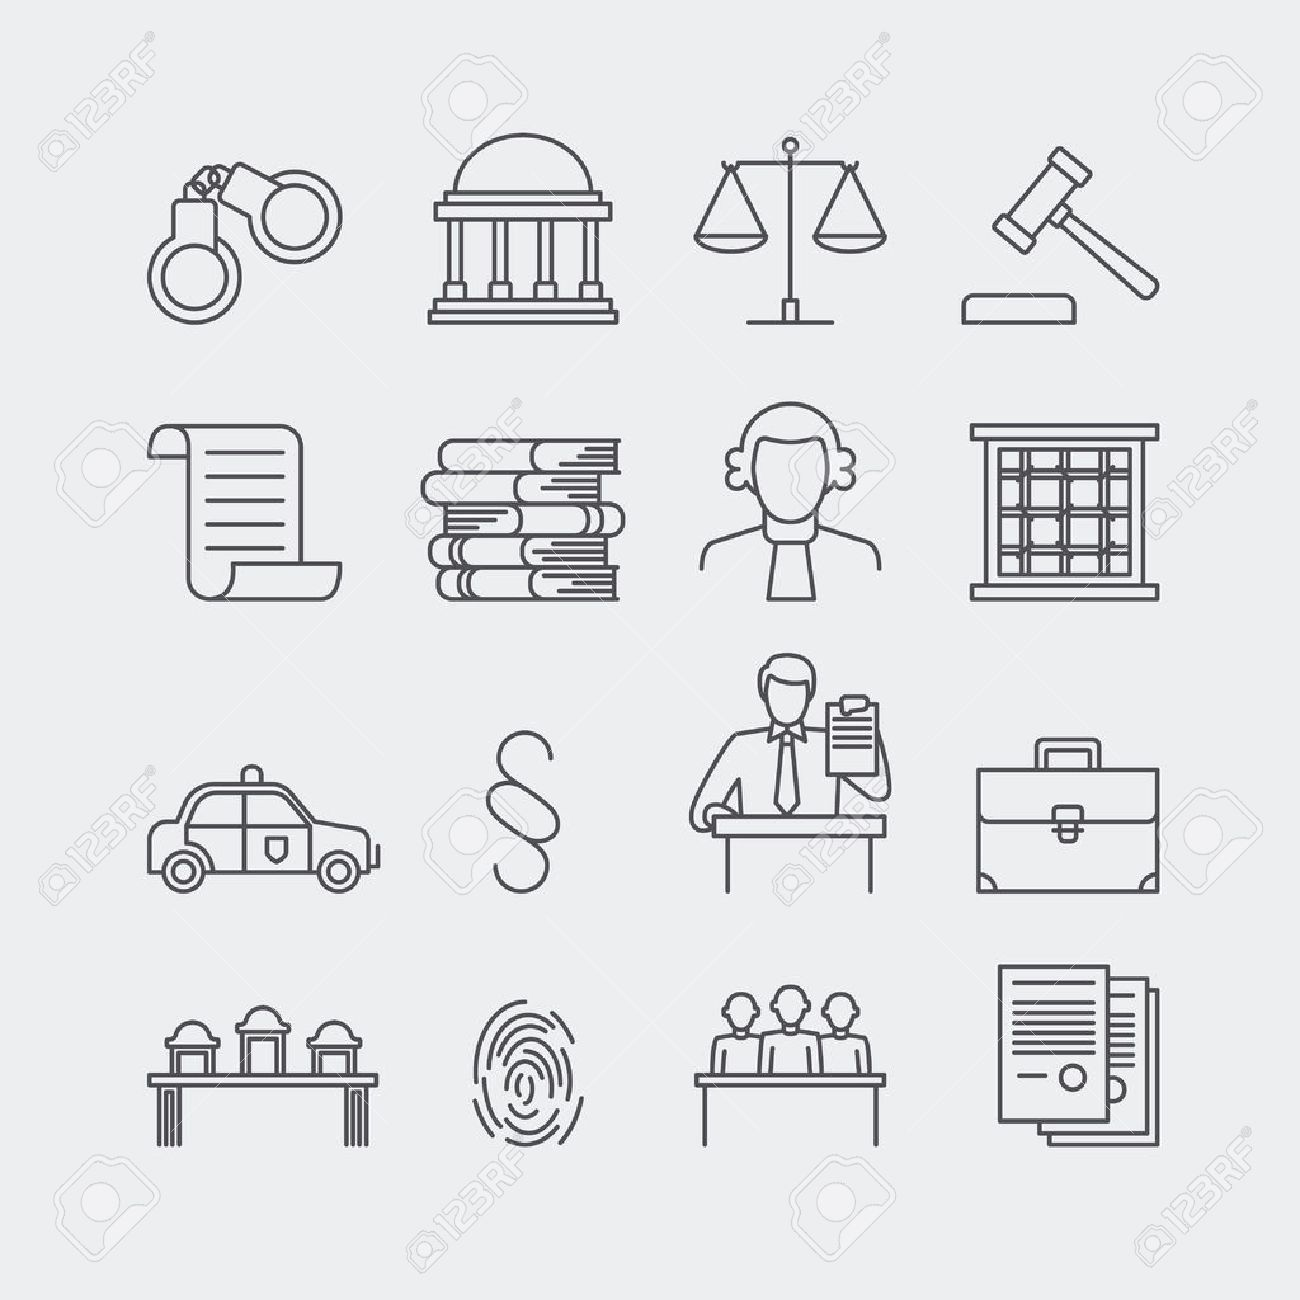 Law and justice thin line vector icons. The legal system, judge, police and lawyer - 50897228